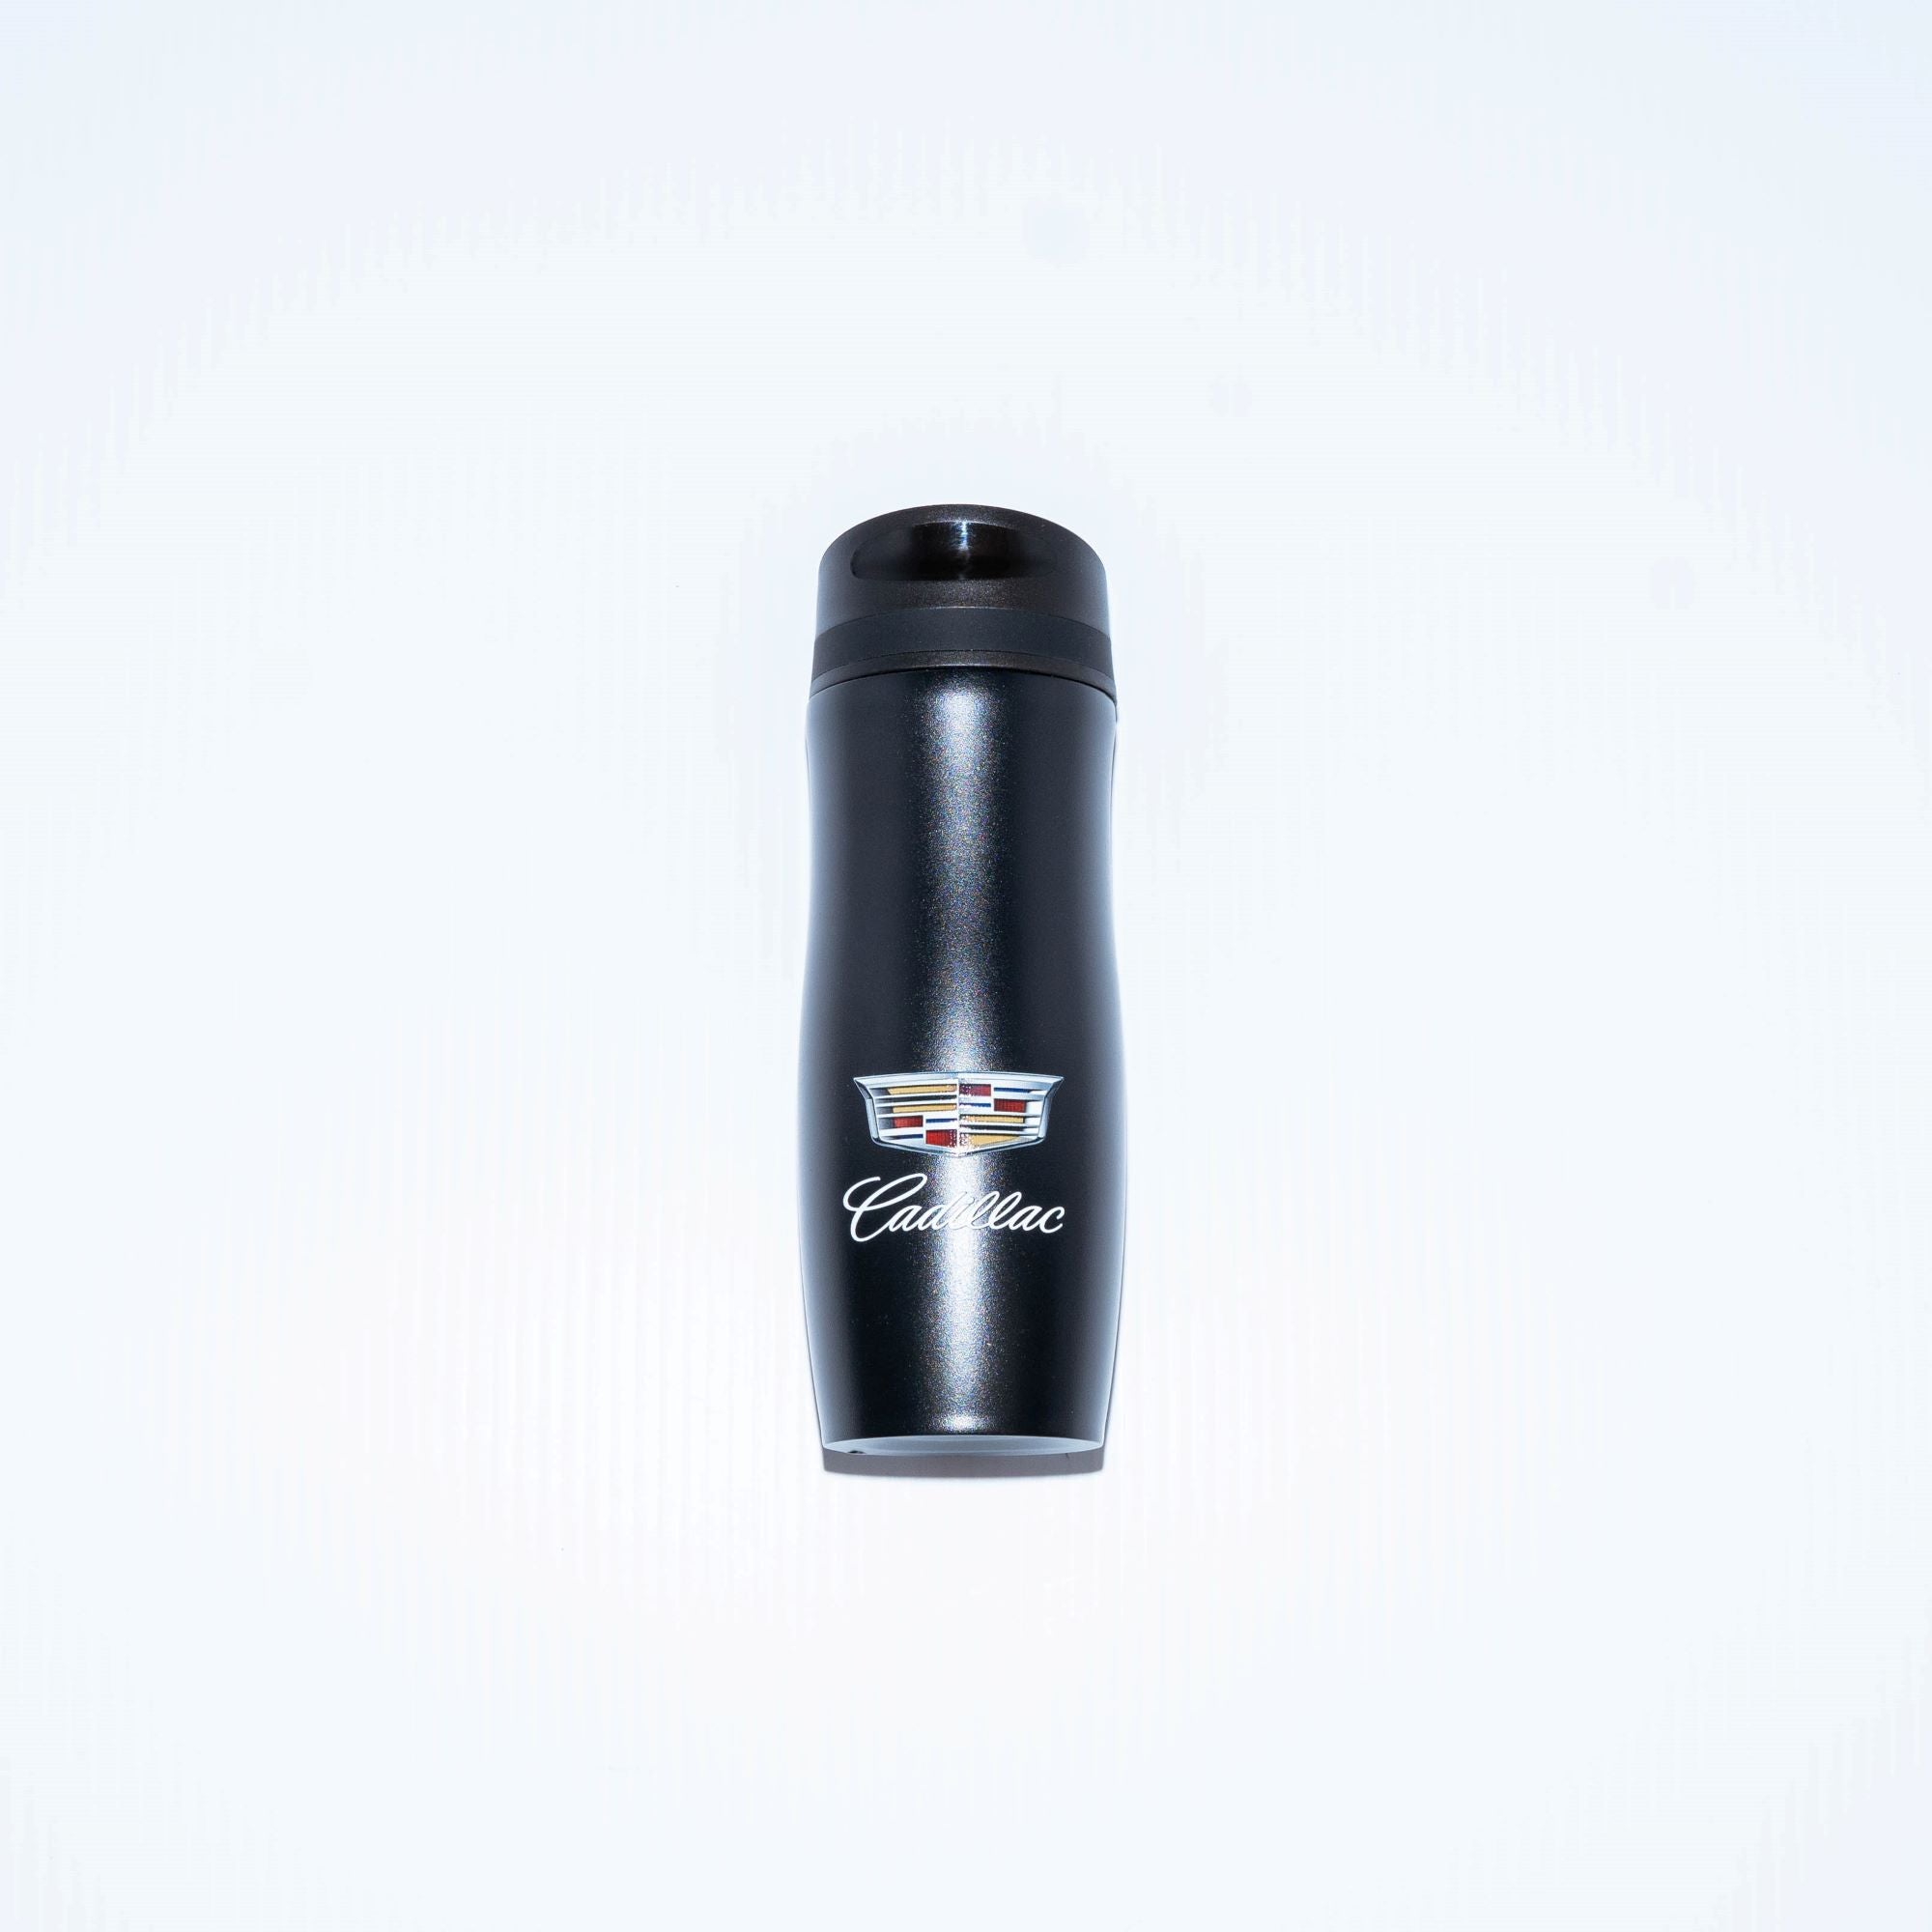 This Persona Wave Trail Cadillac dual wall tumbler is made with stainless steel and a copper-lined deep draw liner.